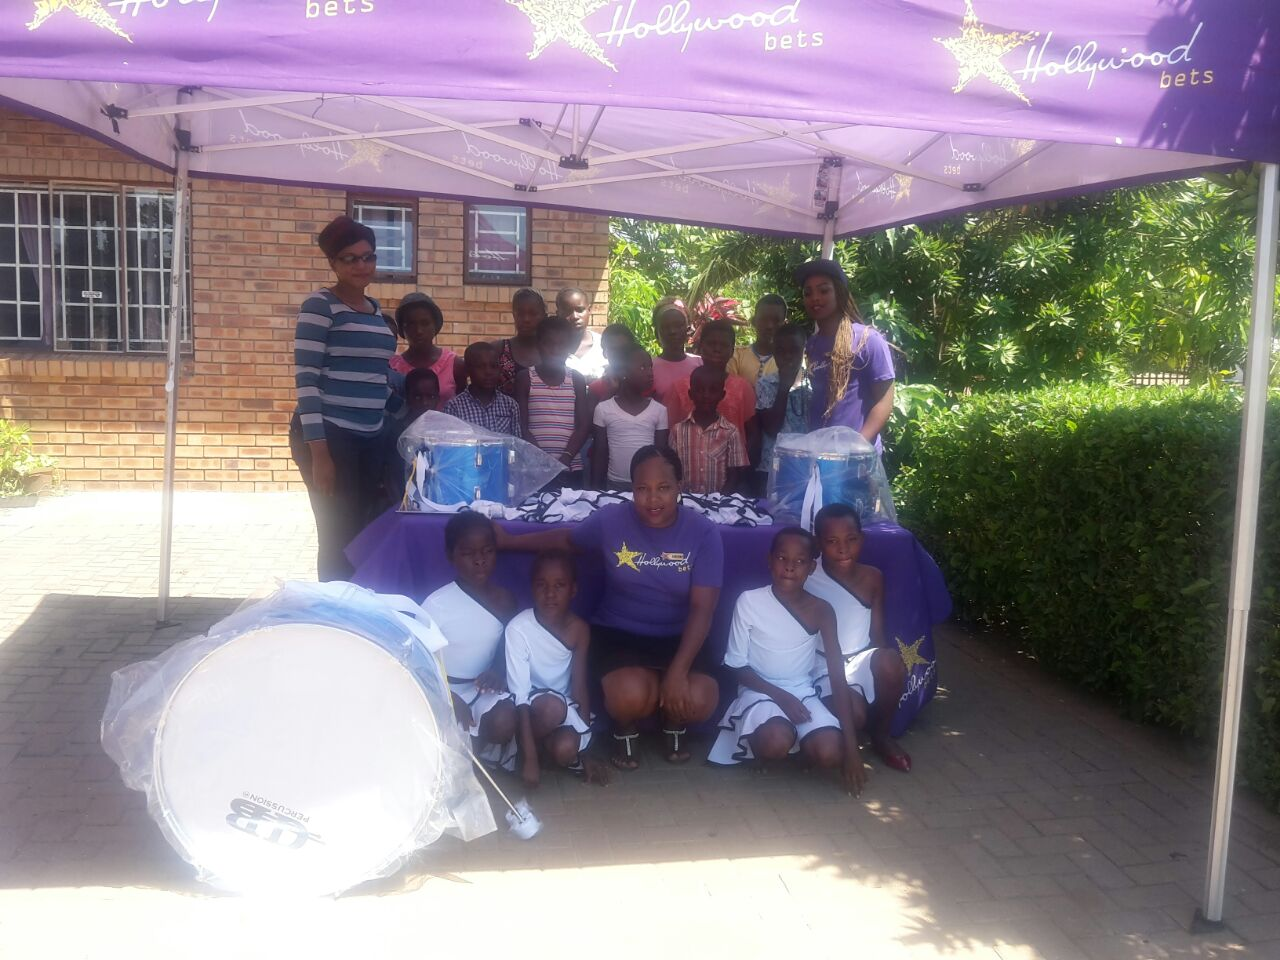 The kids and staff at Children of the Dawn Mangweni are grateful for a donation of musical instruments and books from Hollywoodbets Kinross